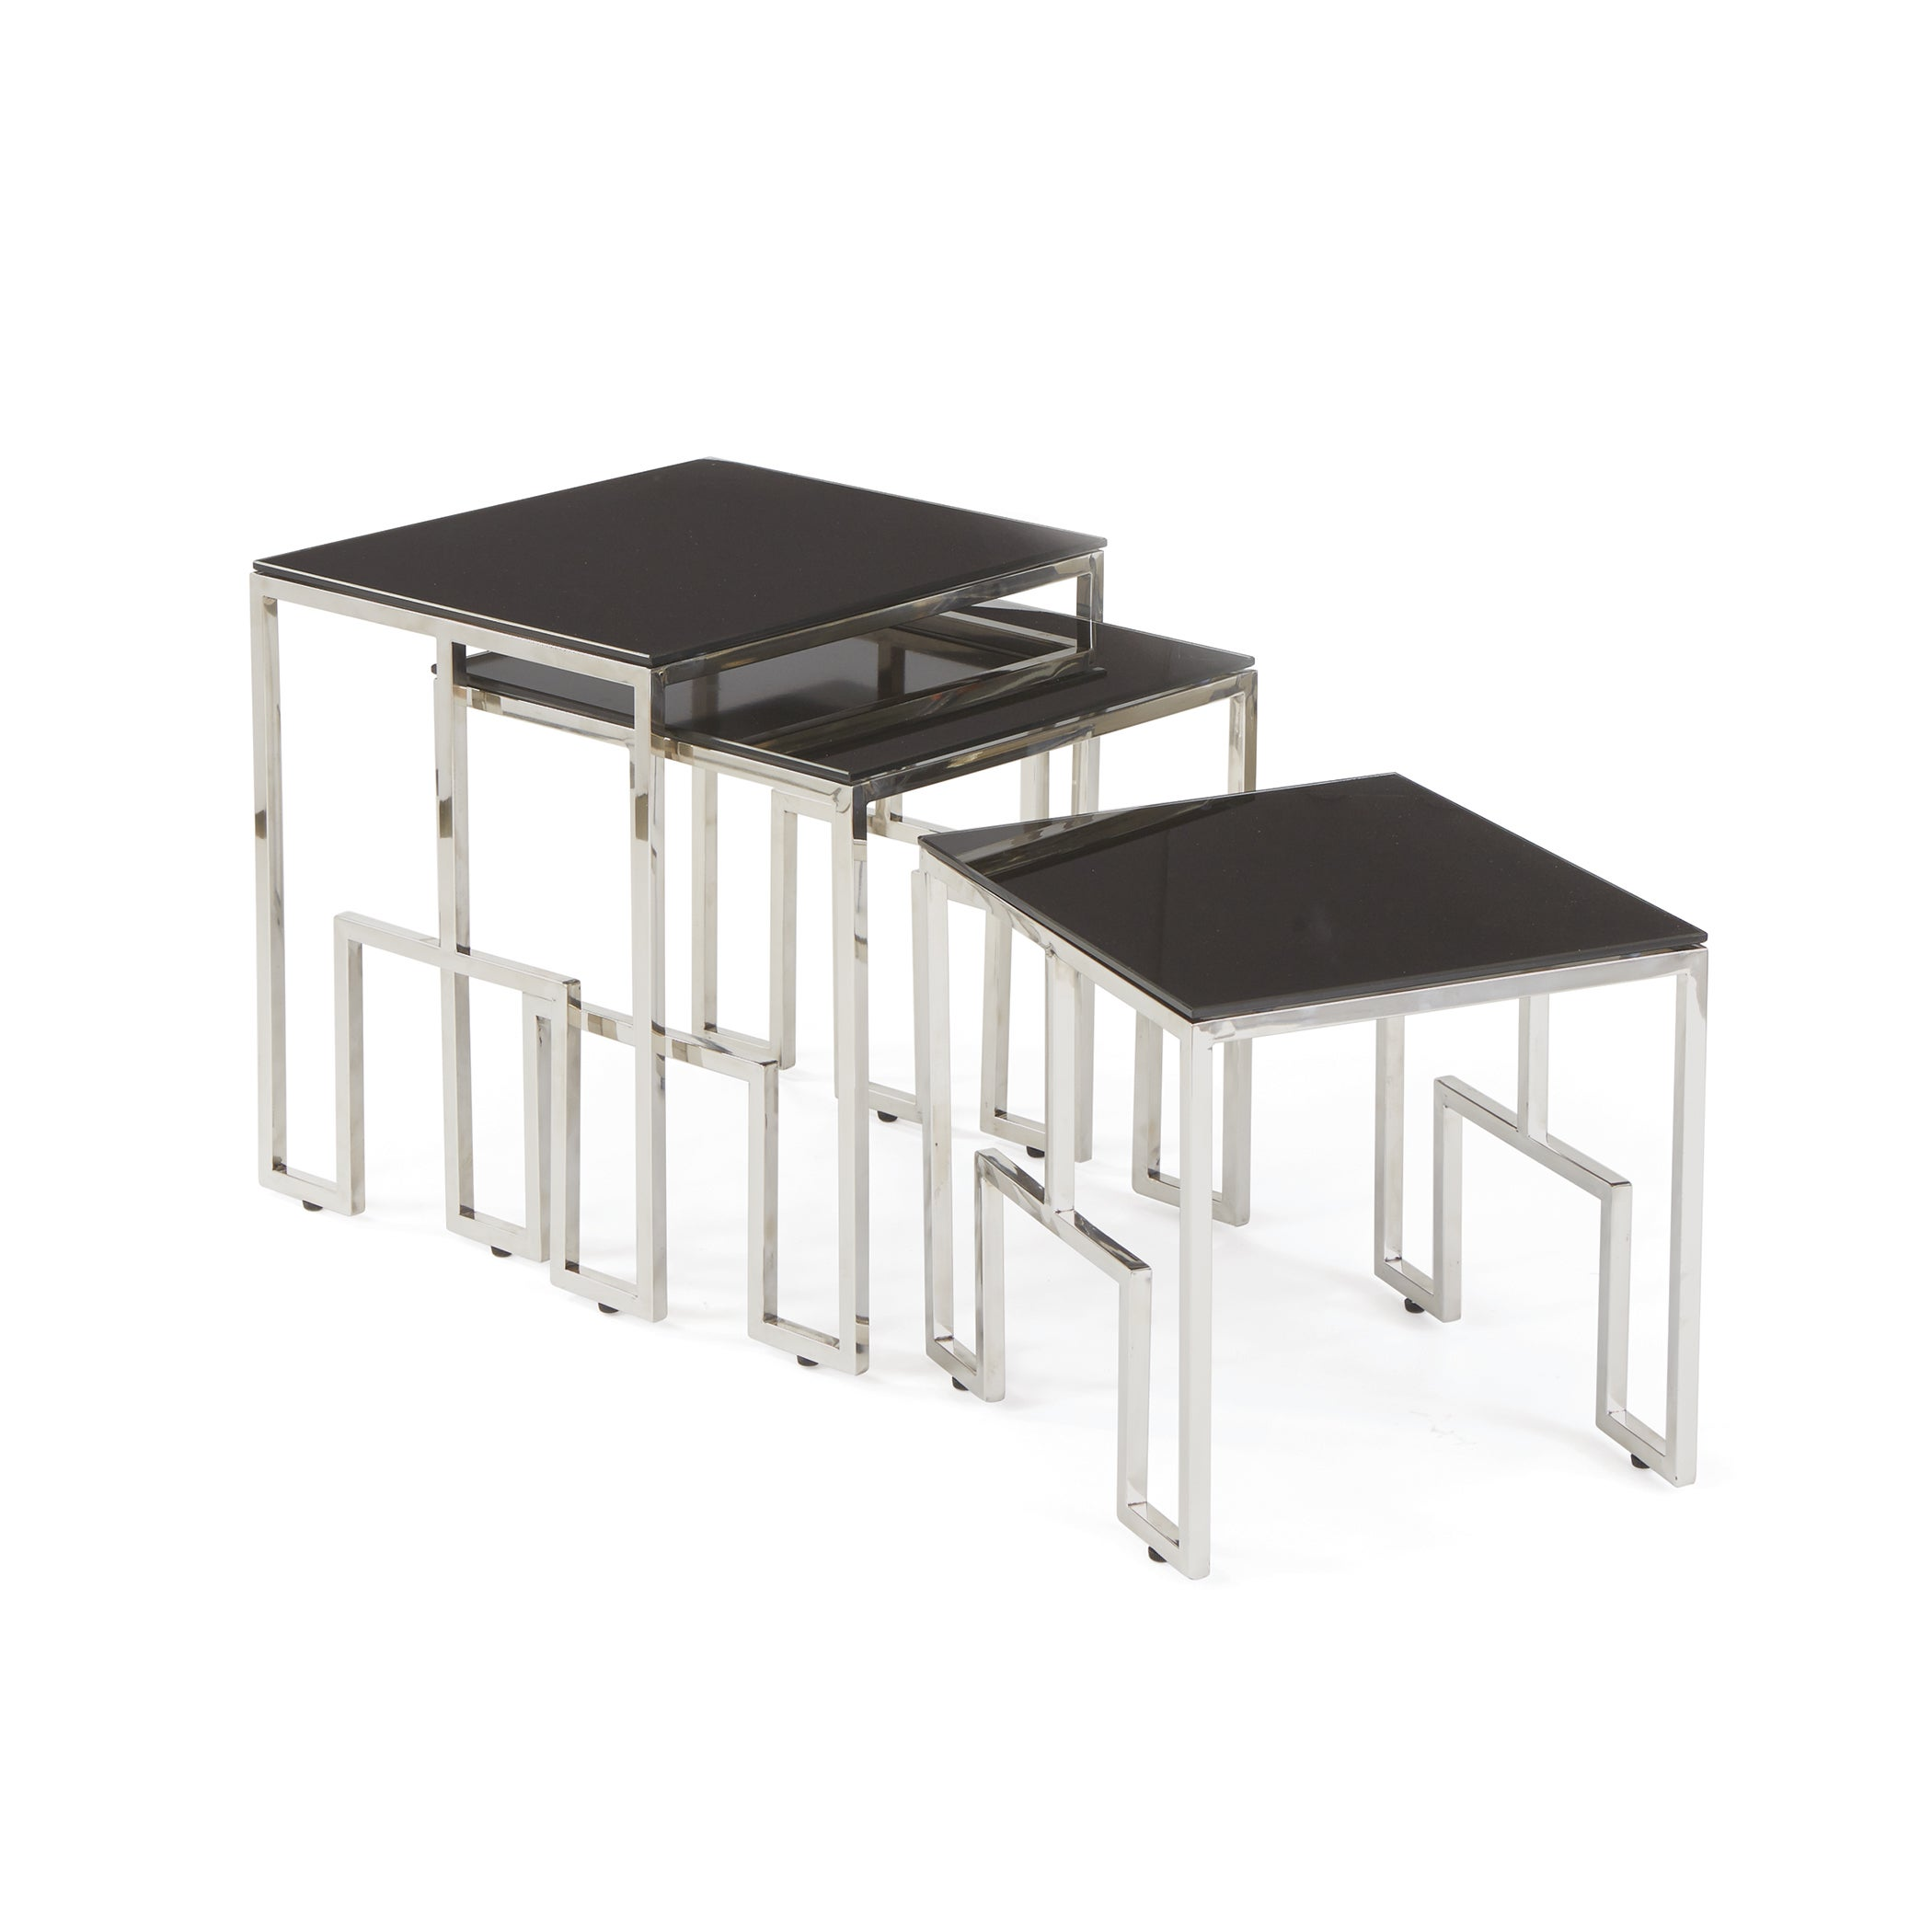 Shop black glass nesting tables free shipping today overstock shop black glass nesting tables free shipping today overstock 11589456 watchthetrailerfo